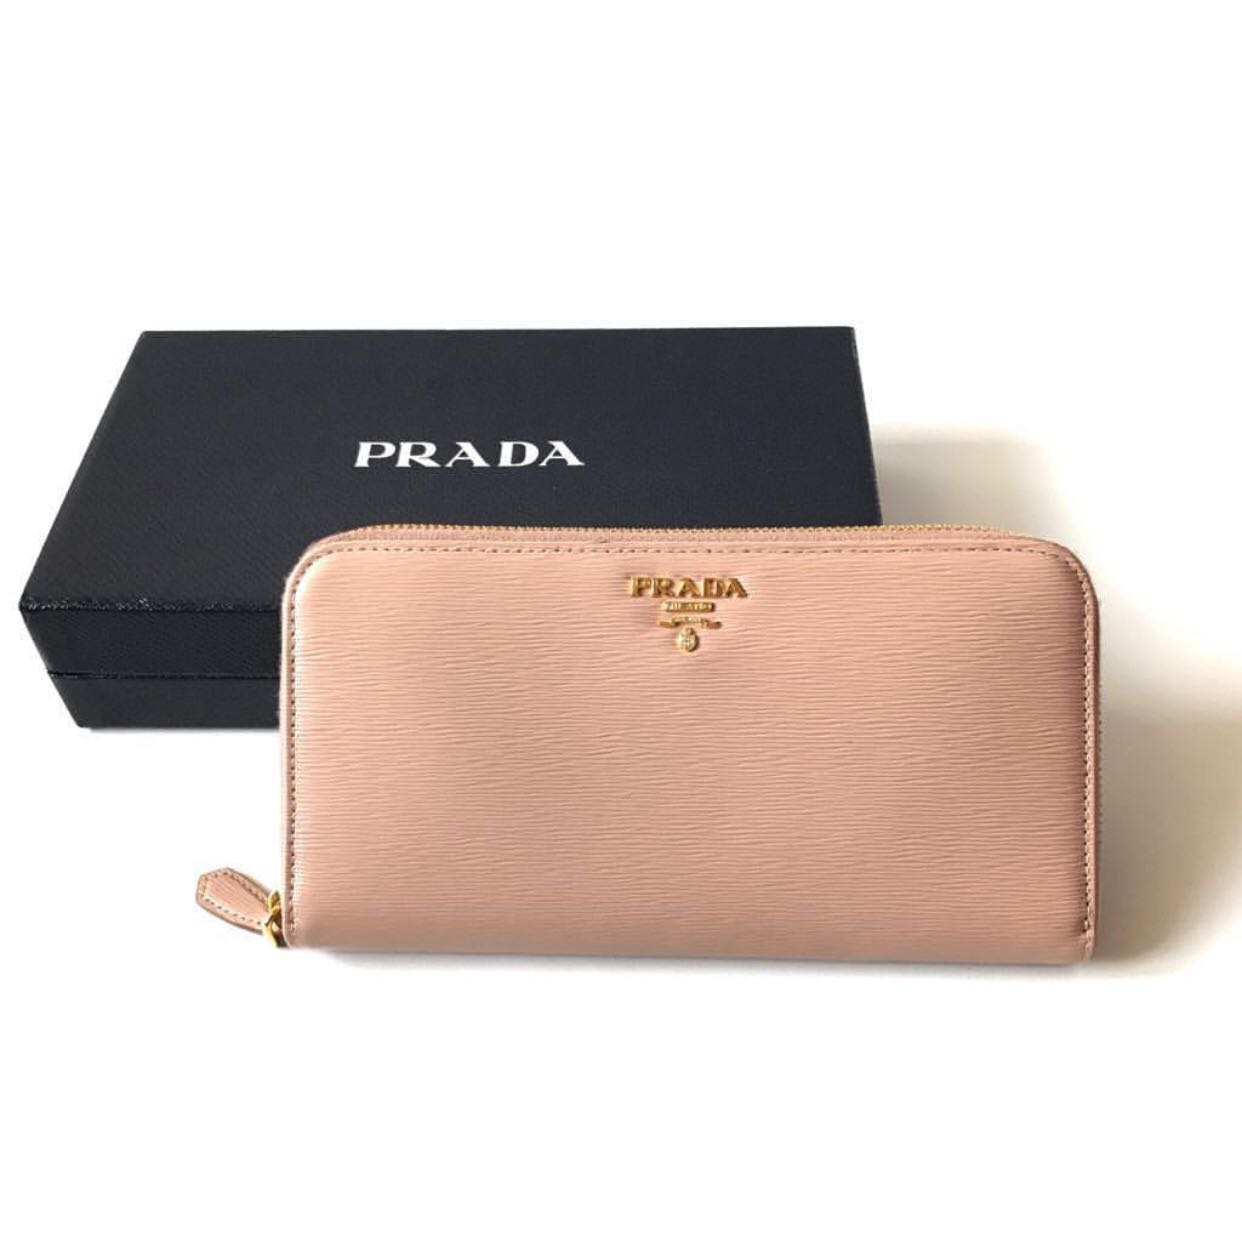 37f7c45624 ... aliexpress prada wallet sale luxury bags wallets wallets on carousell  bdfa8 b84b2